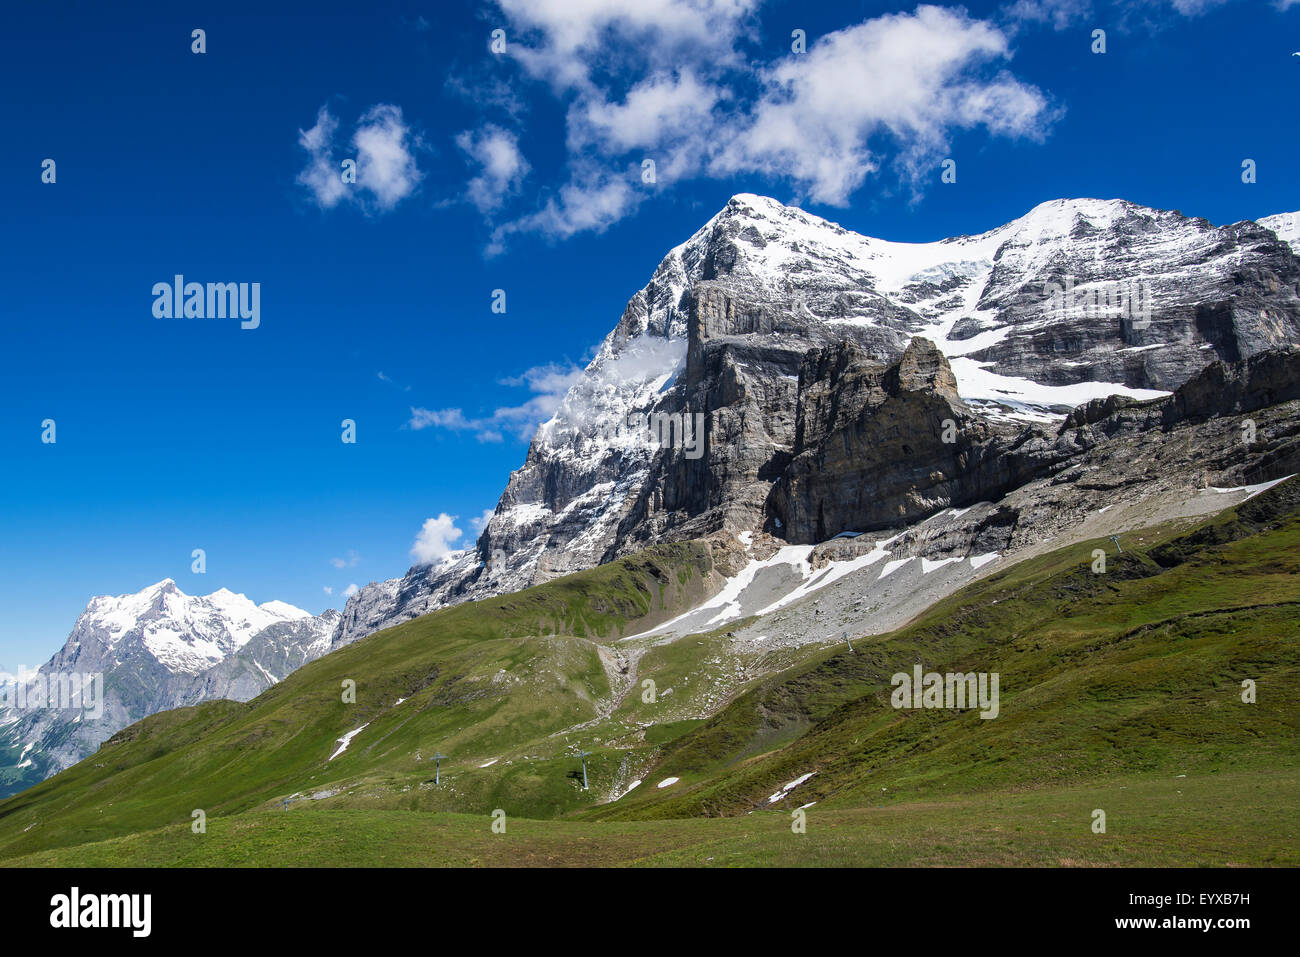 The Eiger showing its notorious north face, Switzerland. - Stock Image